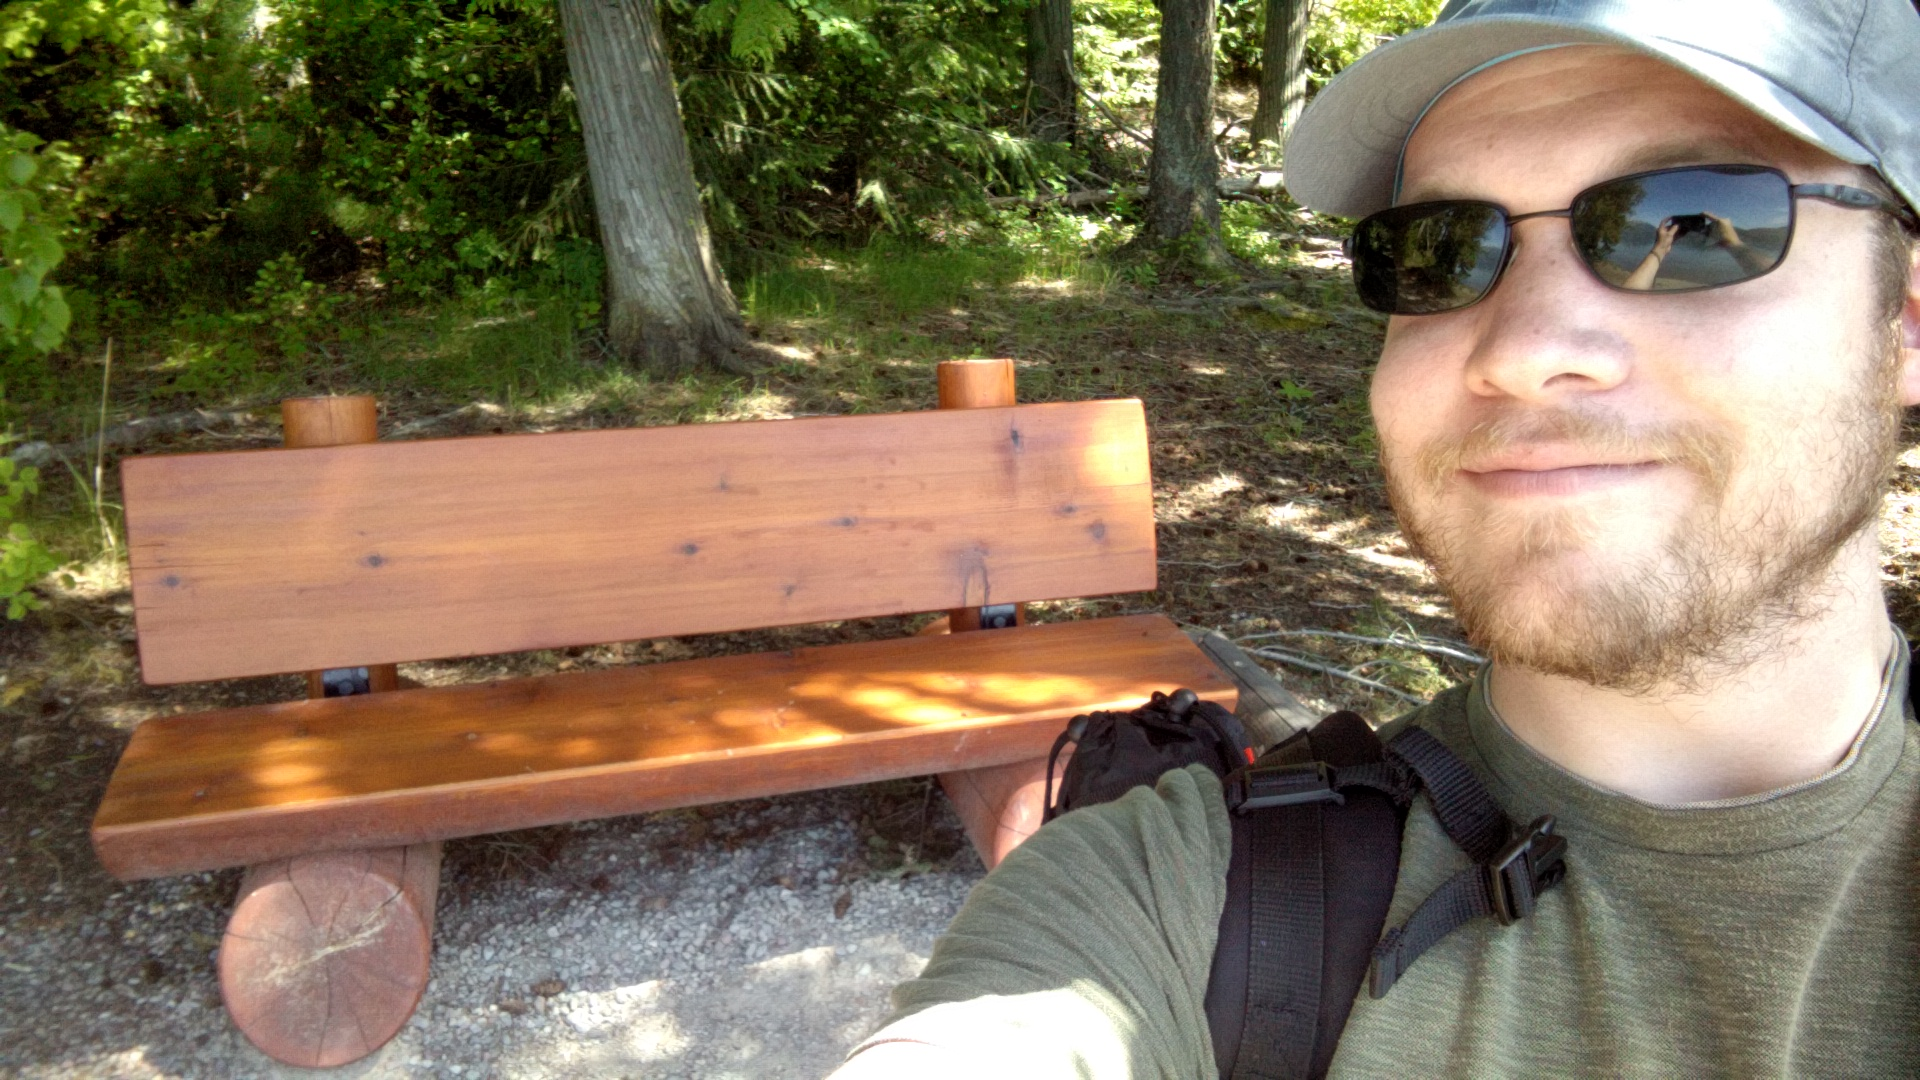 A happy little bench.